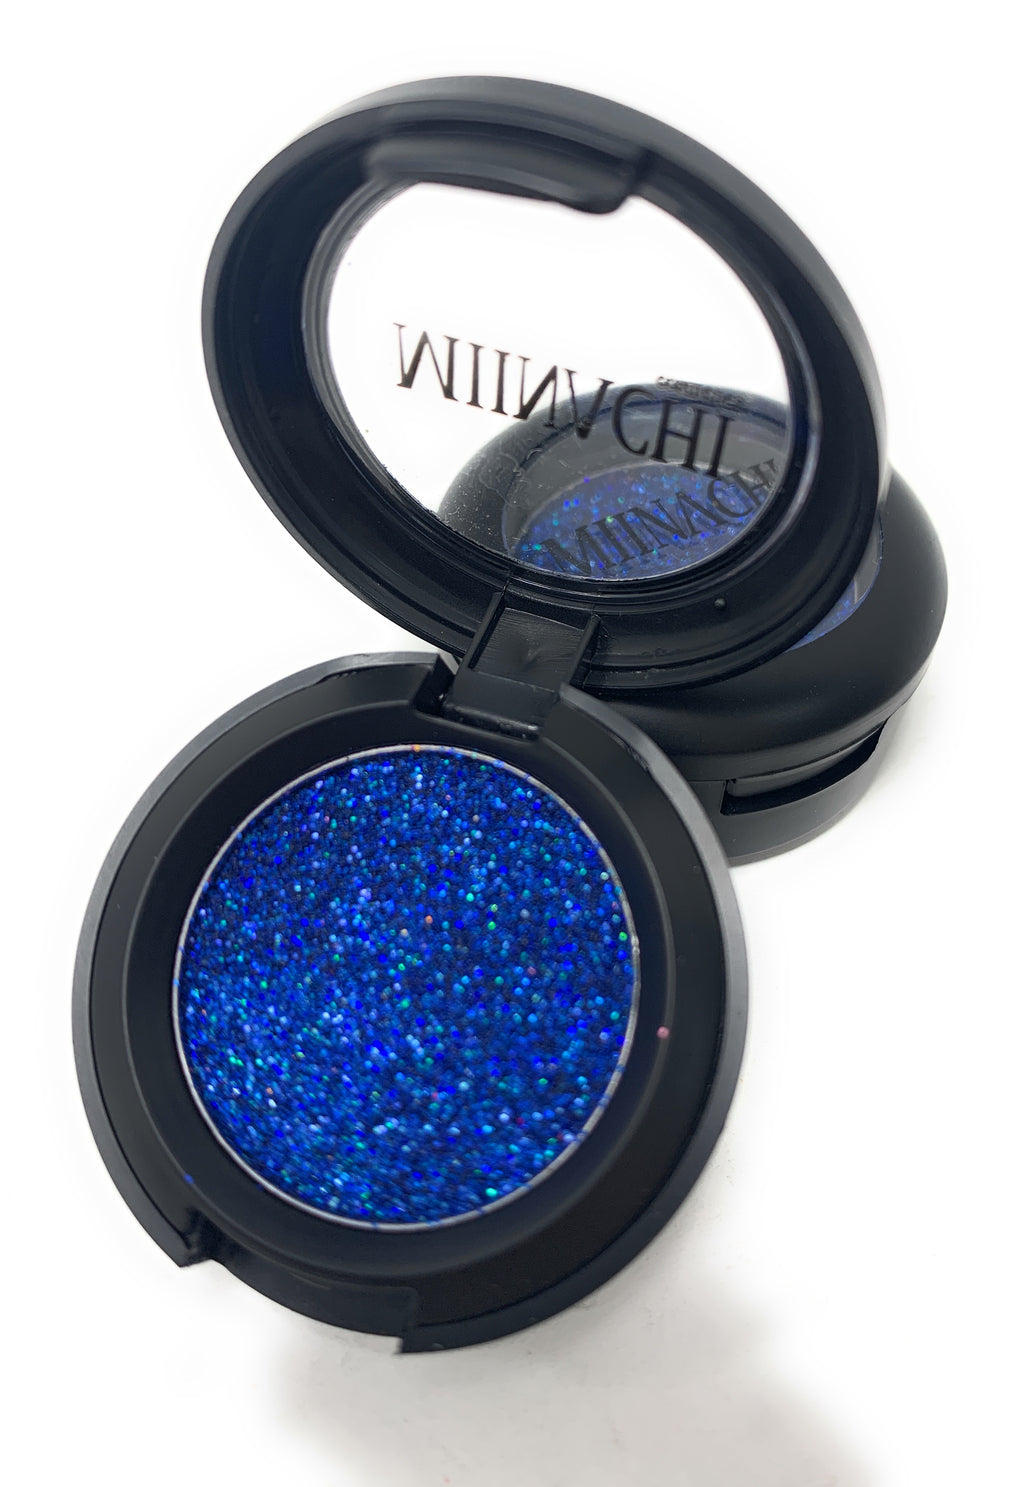 Single Pressed Glitter in the shade Jewel, No Glue Needed, In Compact, Pigmented, No Fall Out, Glitter, Cosmetic Grade Glitter